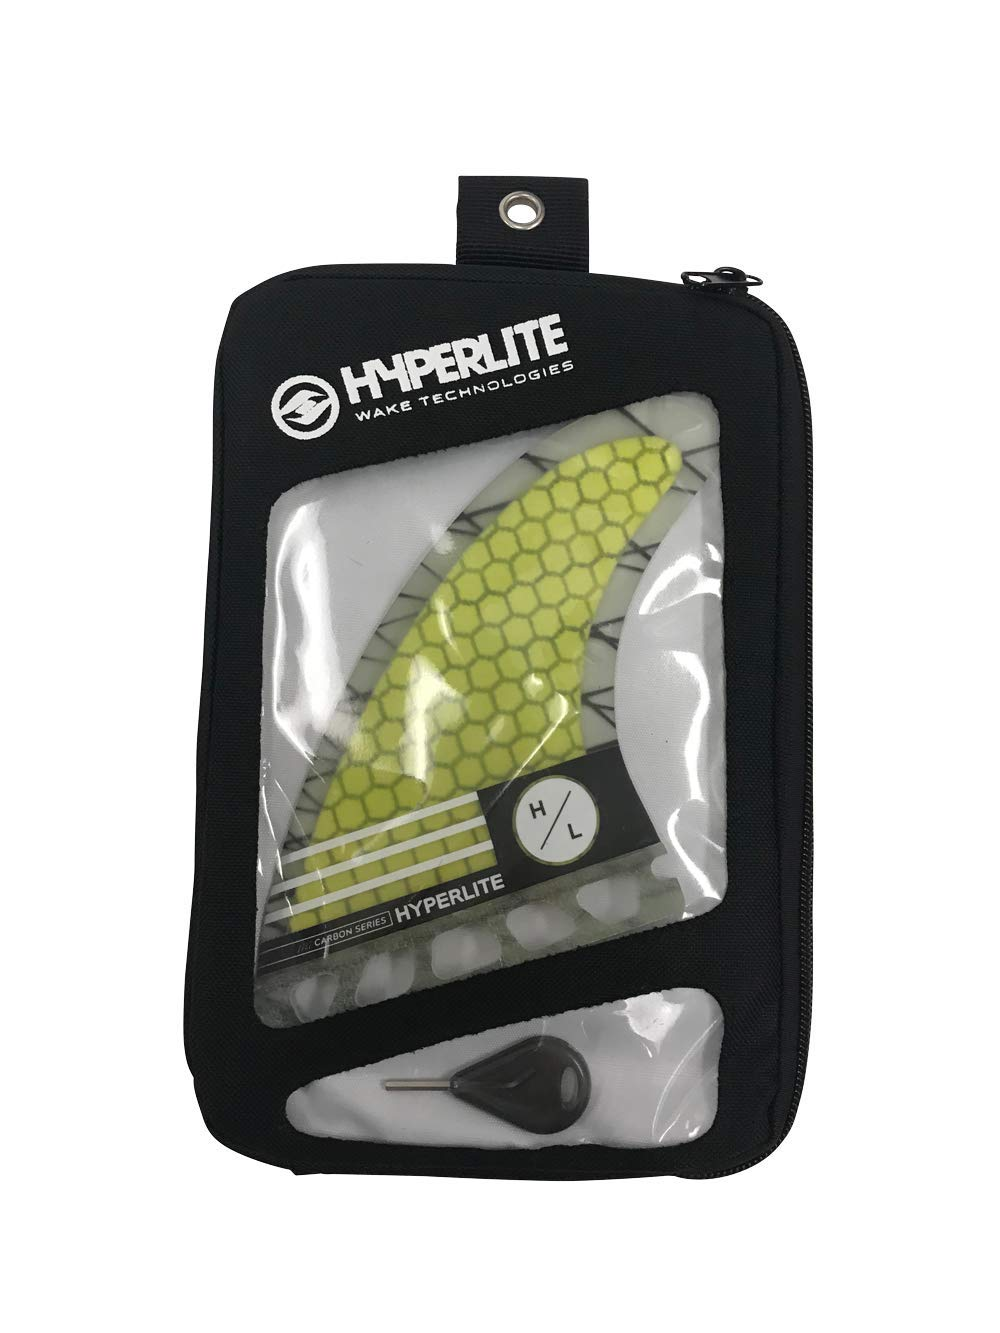 Amazon.com : Hyperlite 2019 Carbon Surf Fin Set with Key 4.5 : Sports & Outdoors